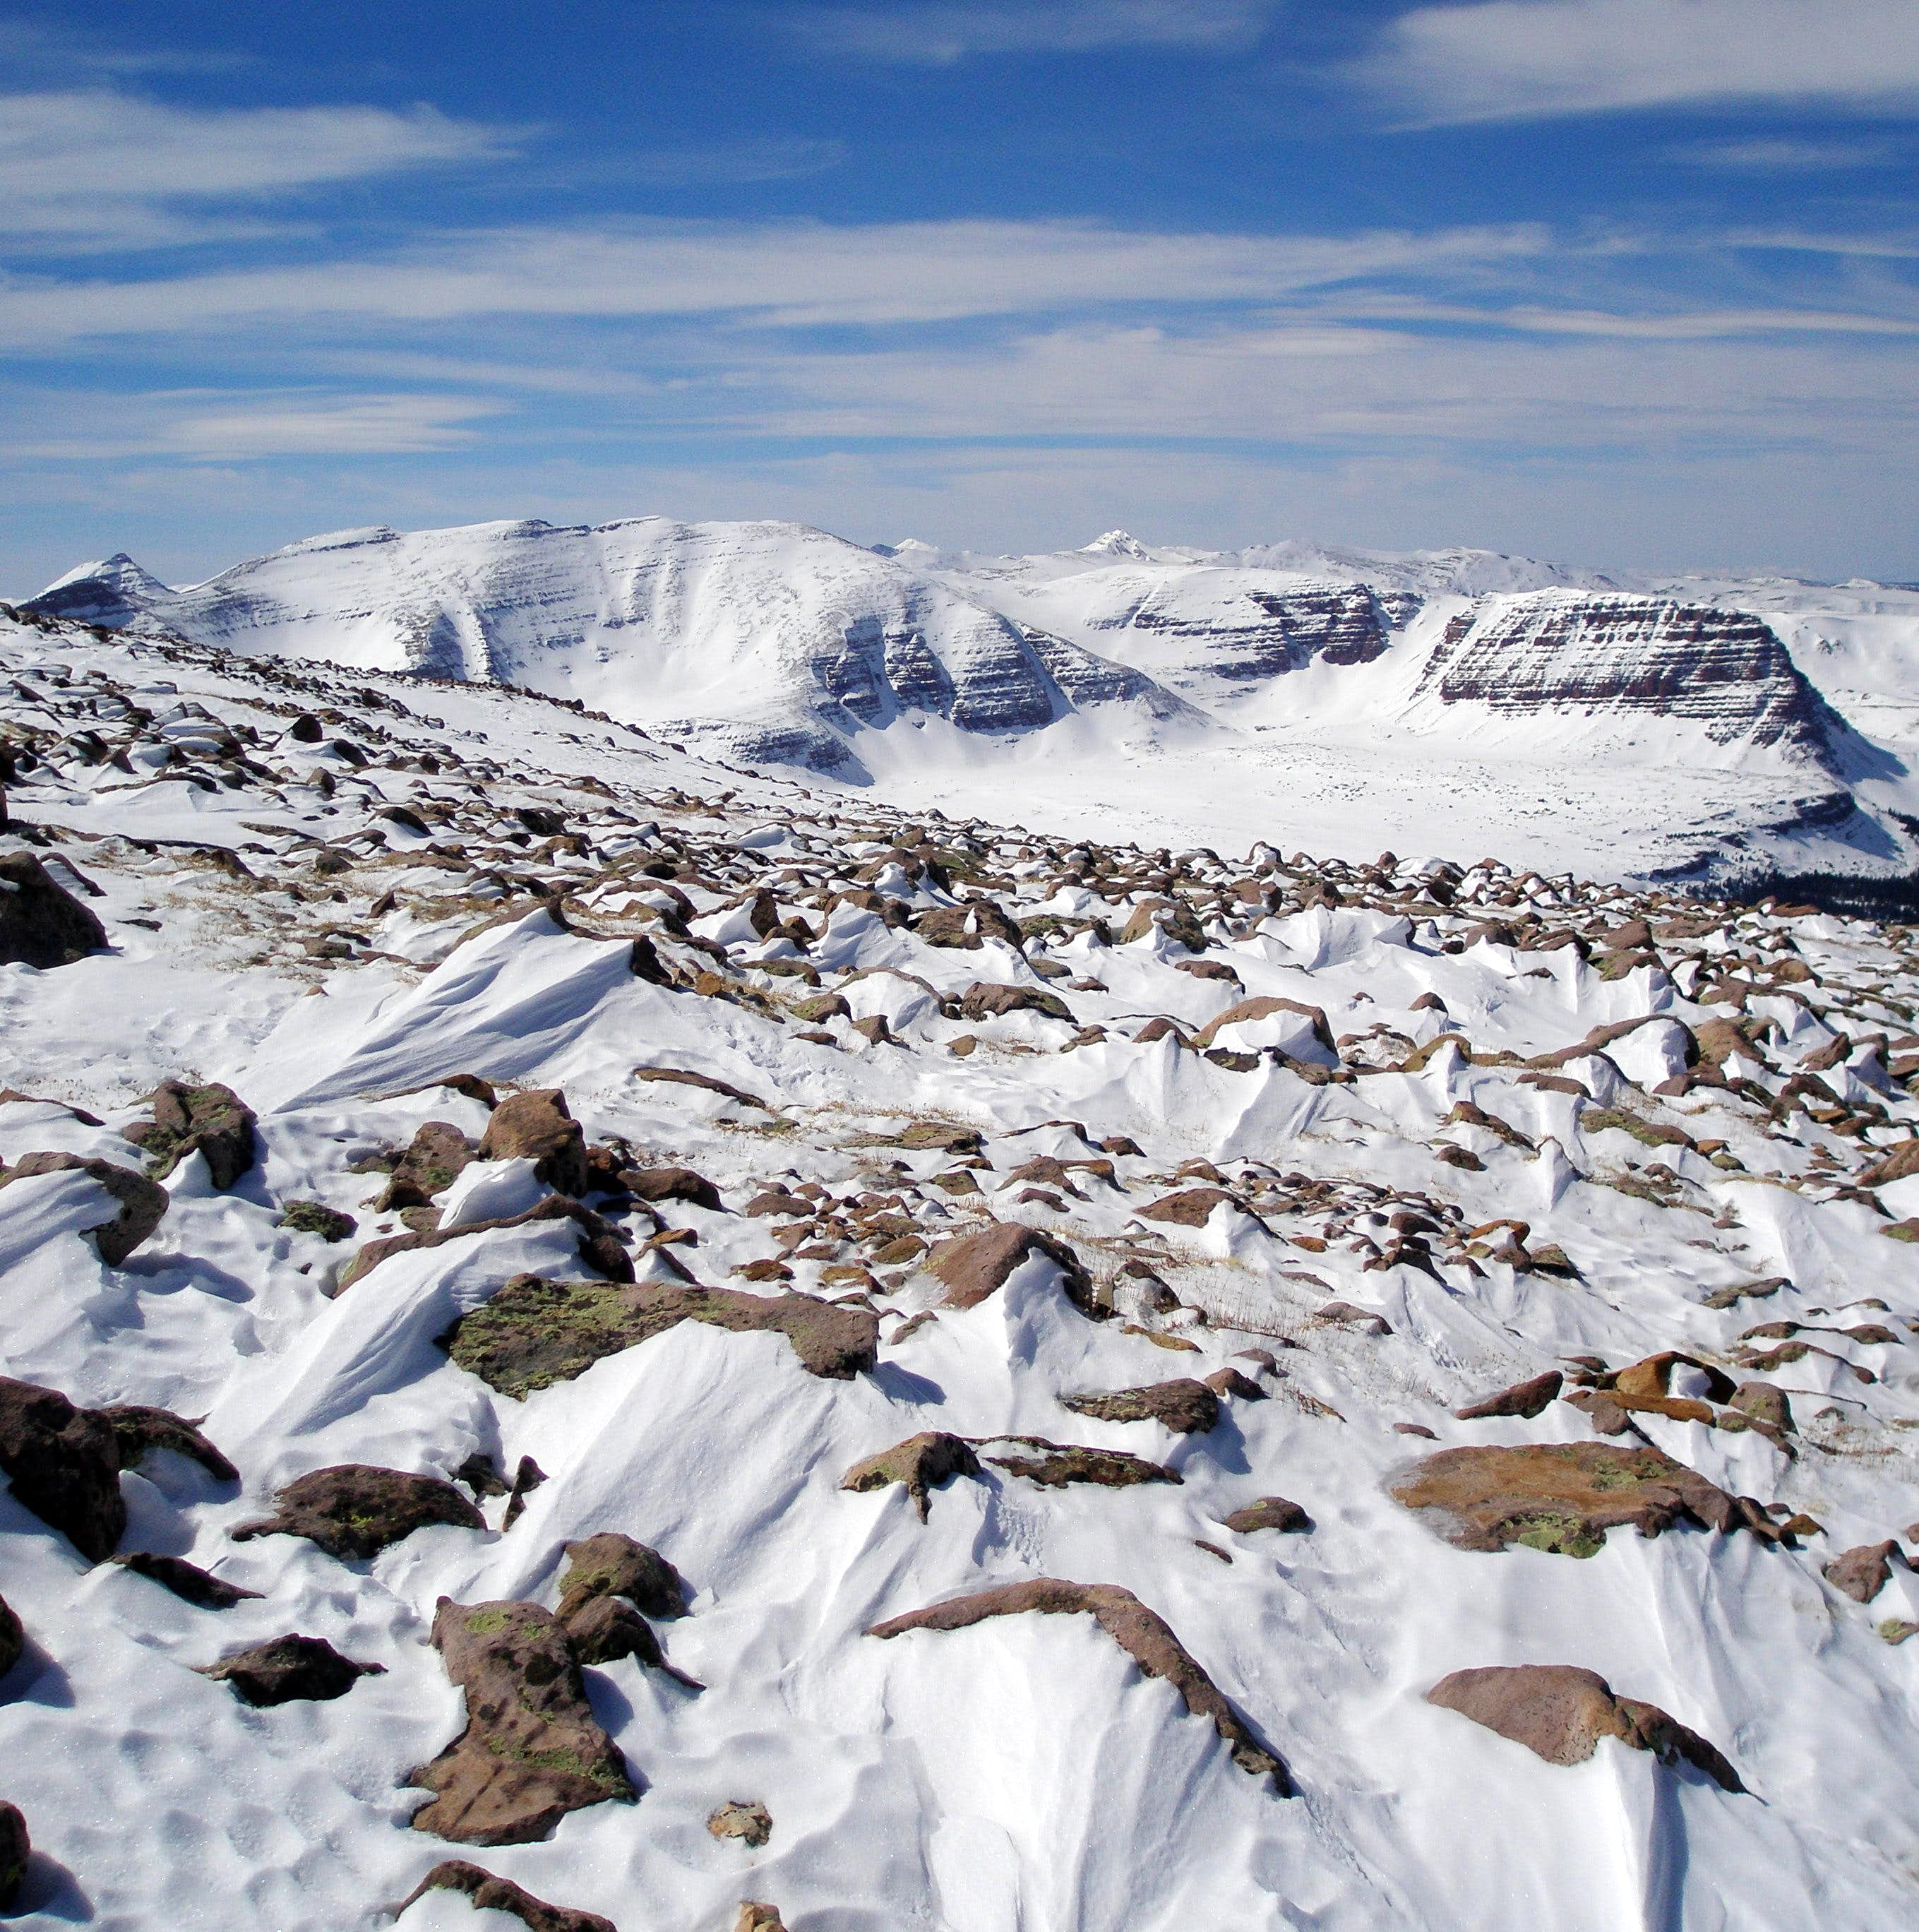 Winter in the High Uintas